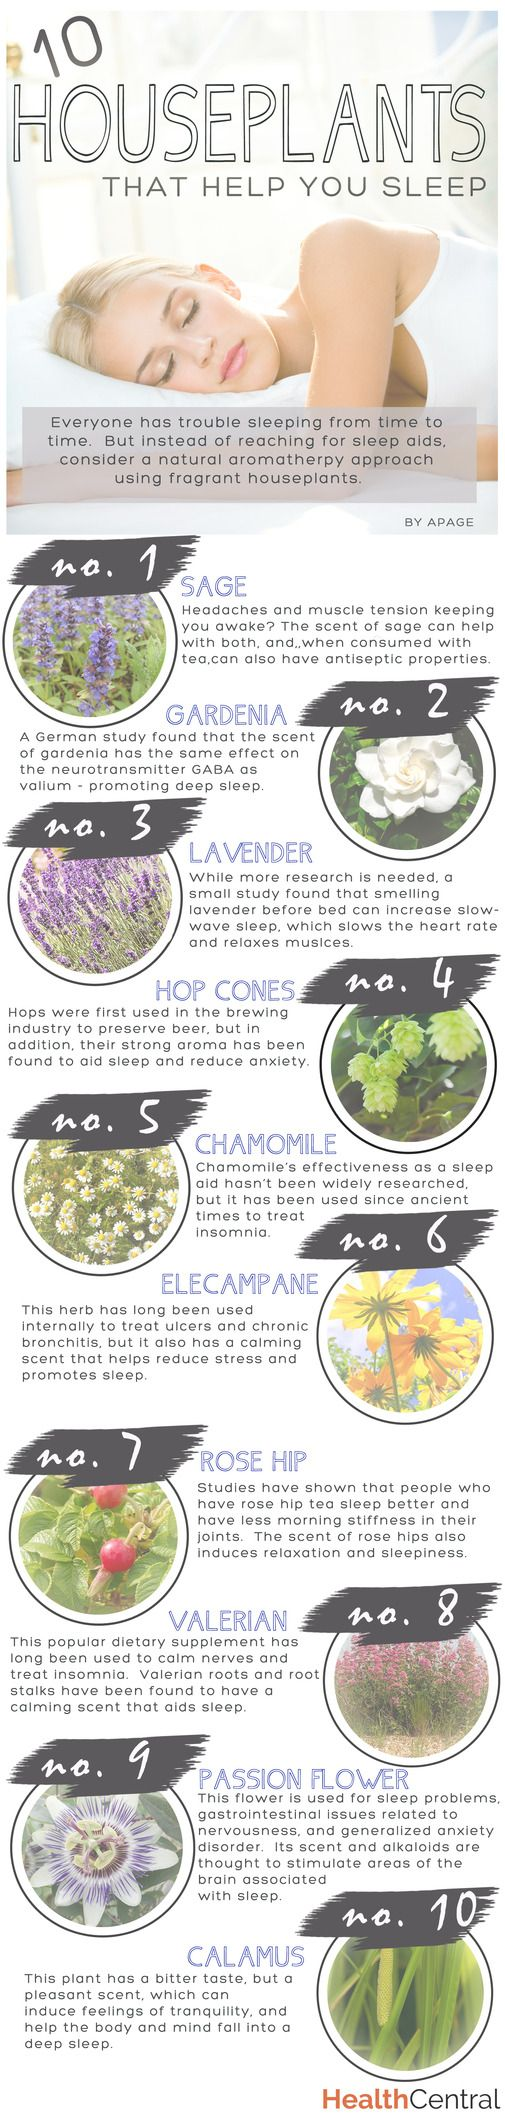 Houseplants for Better Sleep - Health Infographic Design